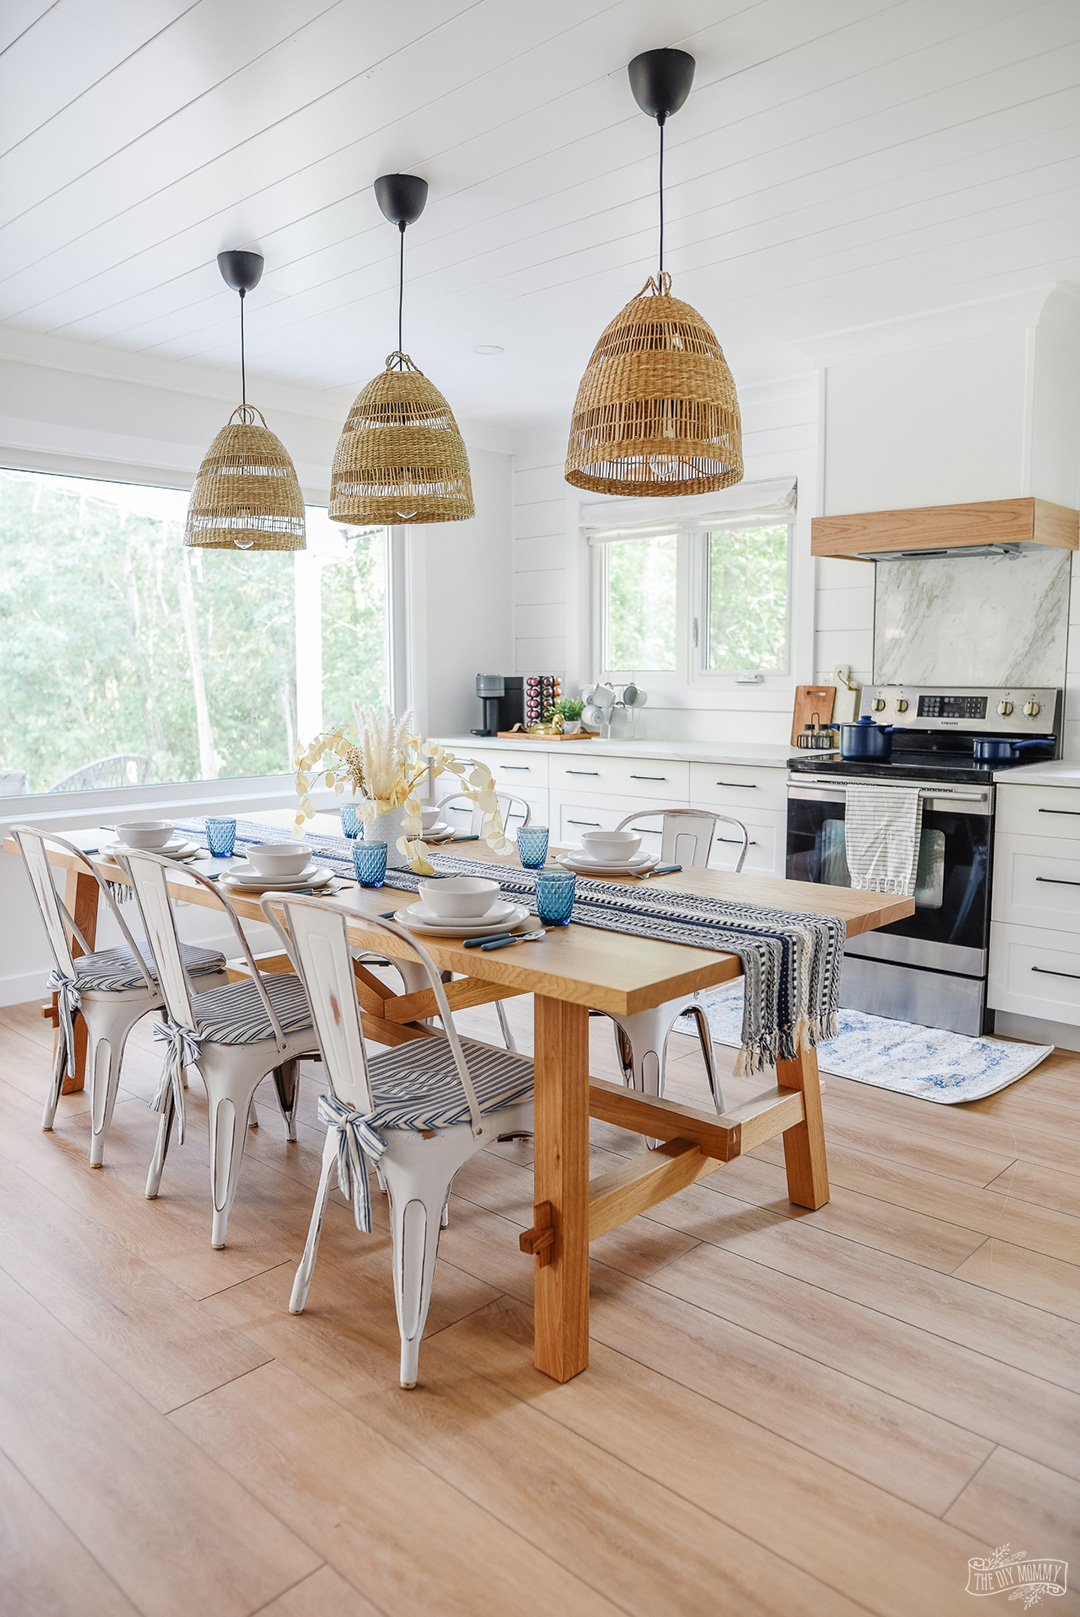 See how a dated honey oak kitchen was transformed into a coastal modern farmhouse kitchen with an eat-in layout, white shaker cabinets and white oak accents.